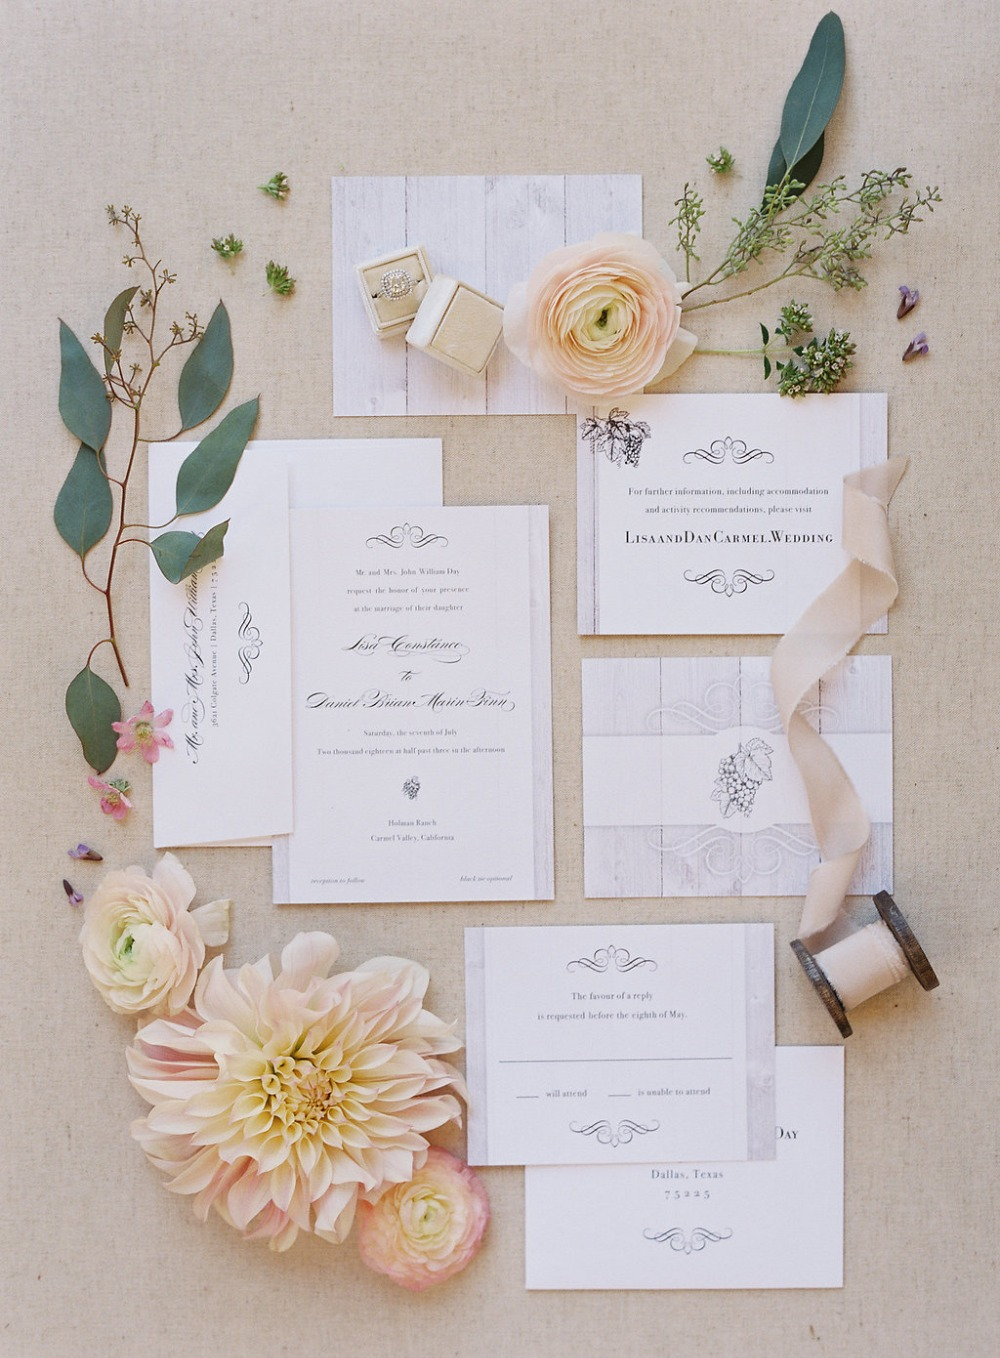 a chic yet rustic wedding invitation suite